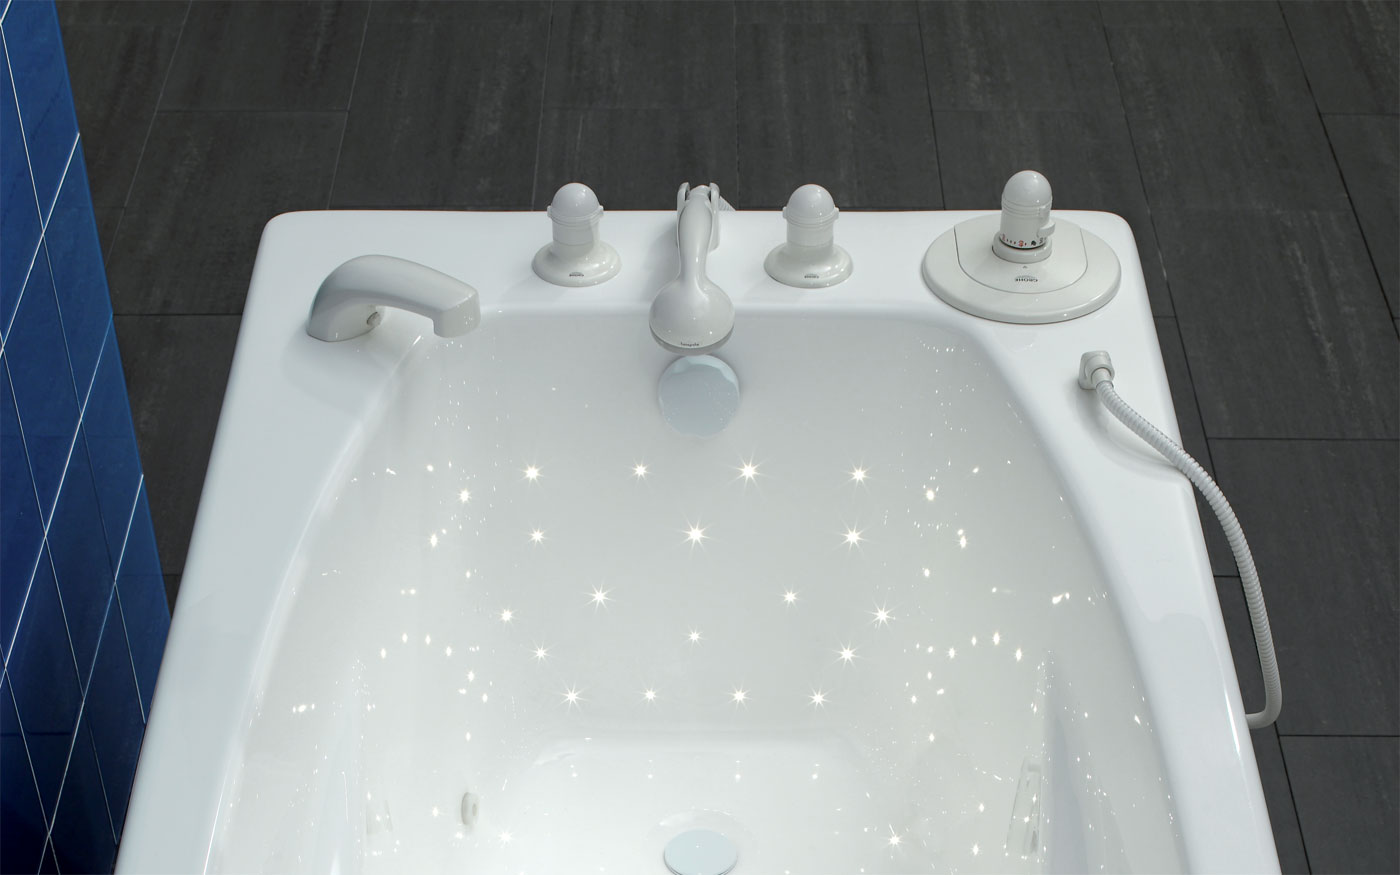 Hydrotherapy tub Luxury